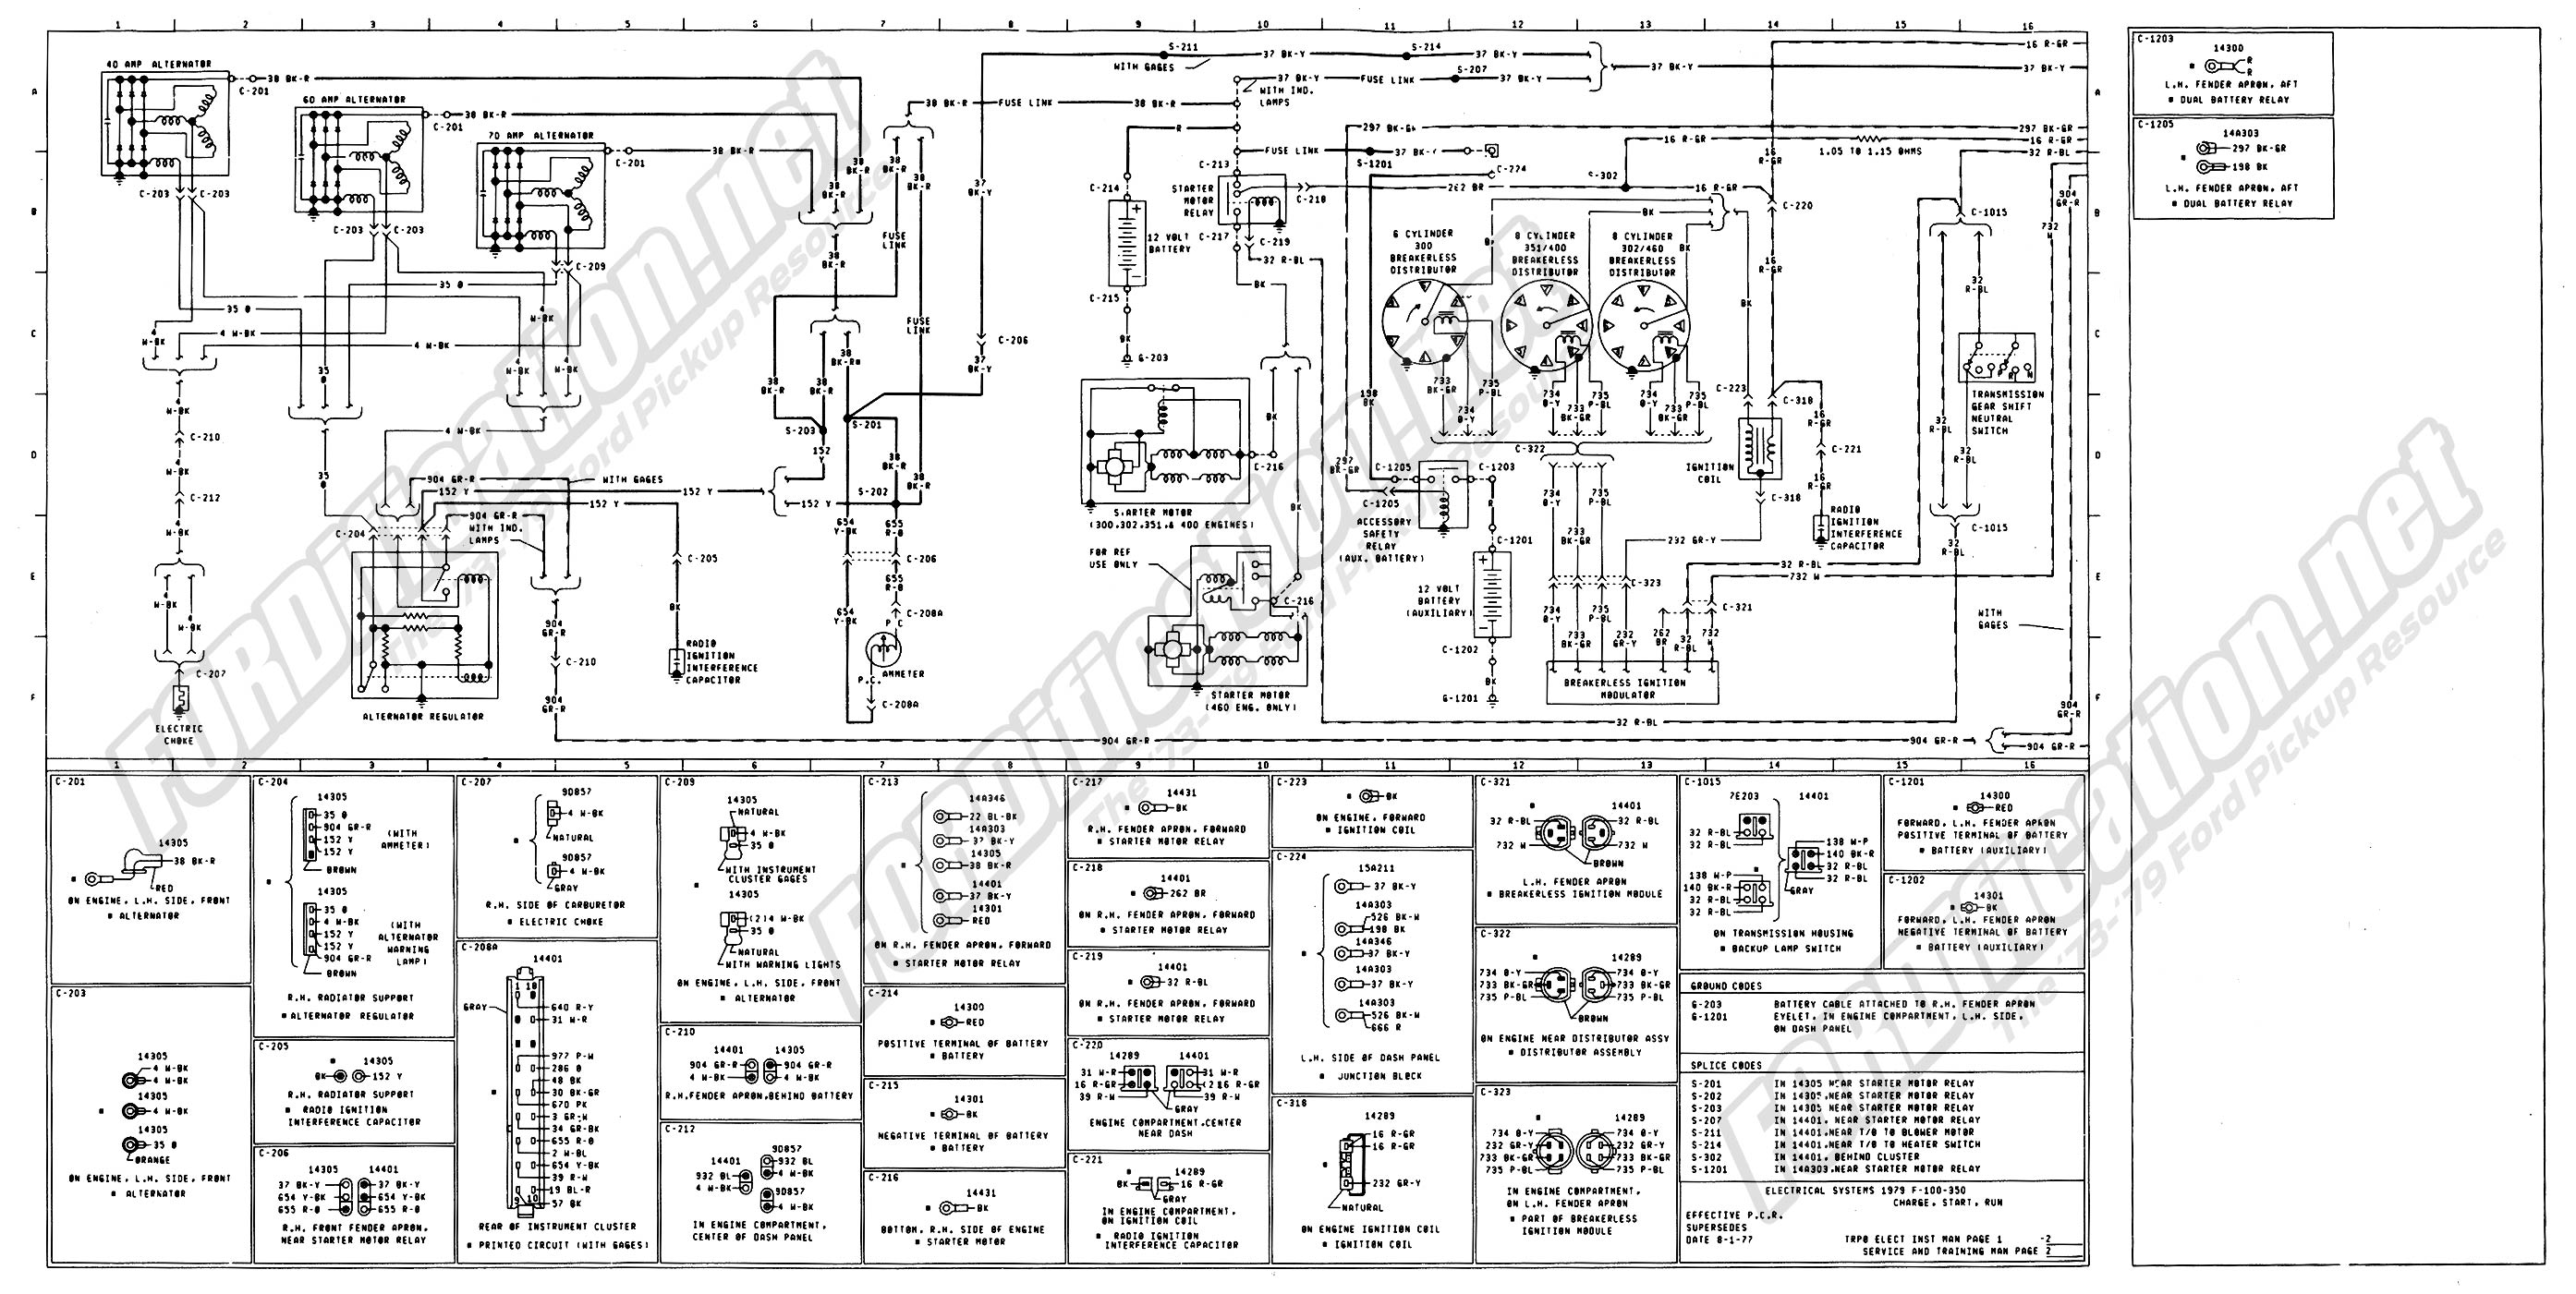 1973 1979 ford truck wiring diagrams schematics fordification net rh fordification net 2012 F250 Fuse Box Diagram 2012 Ford F250 Super Duty Fuse Diagram